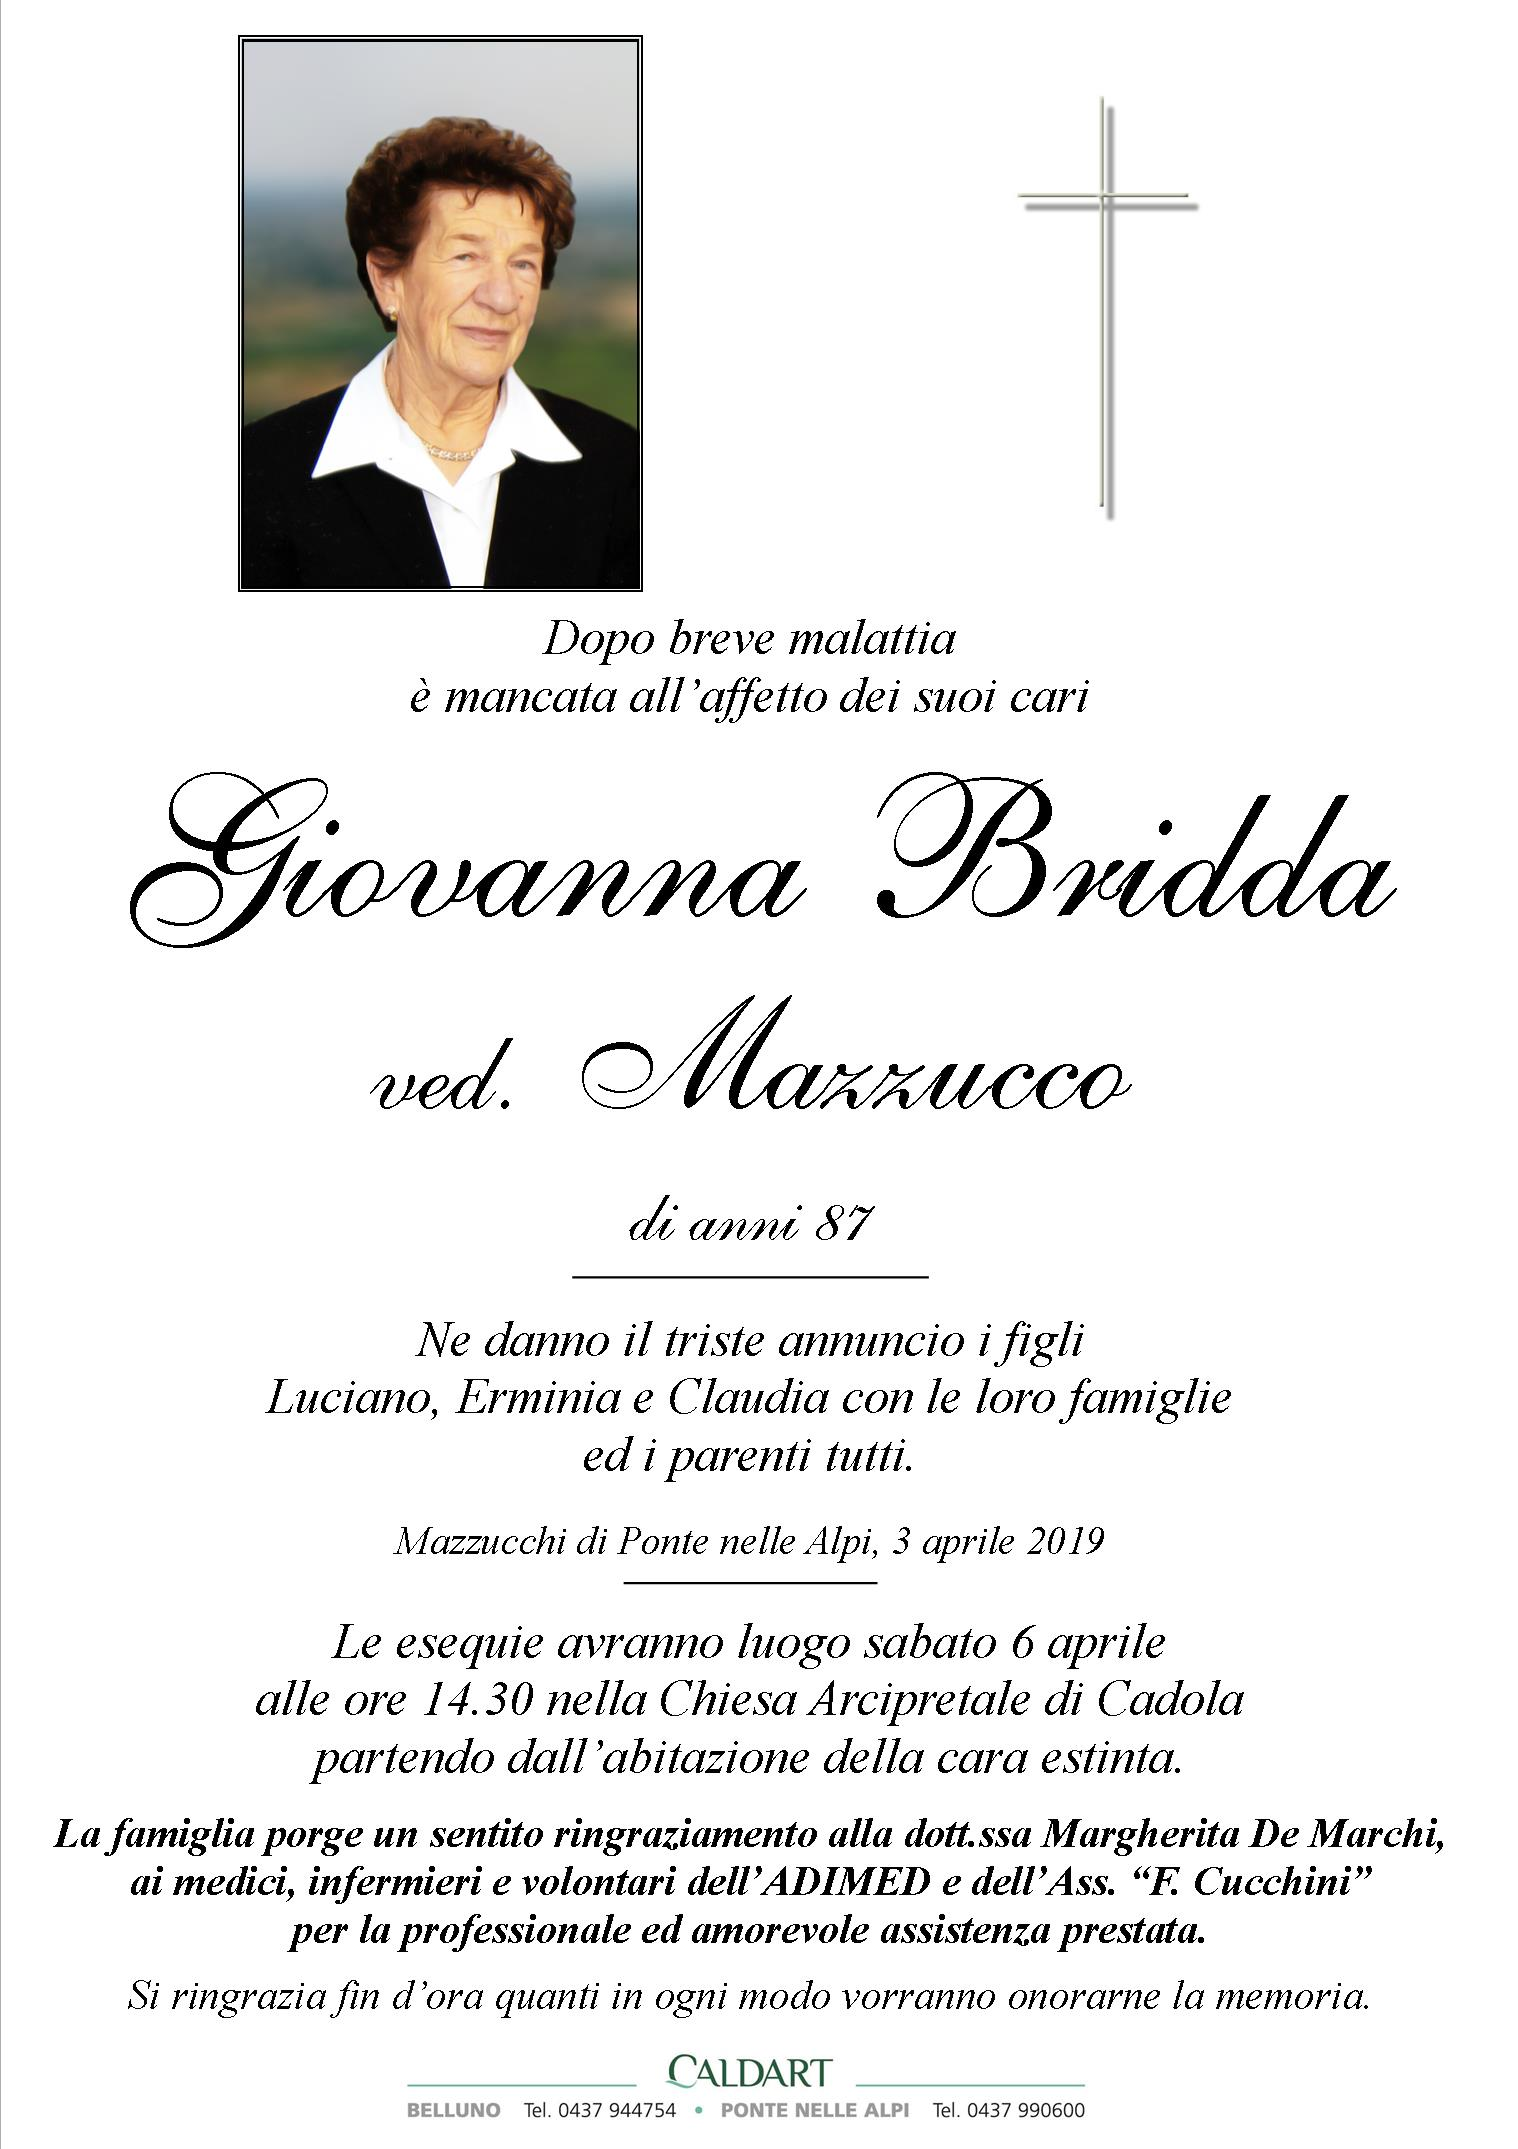 Bridda Giovanna